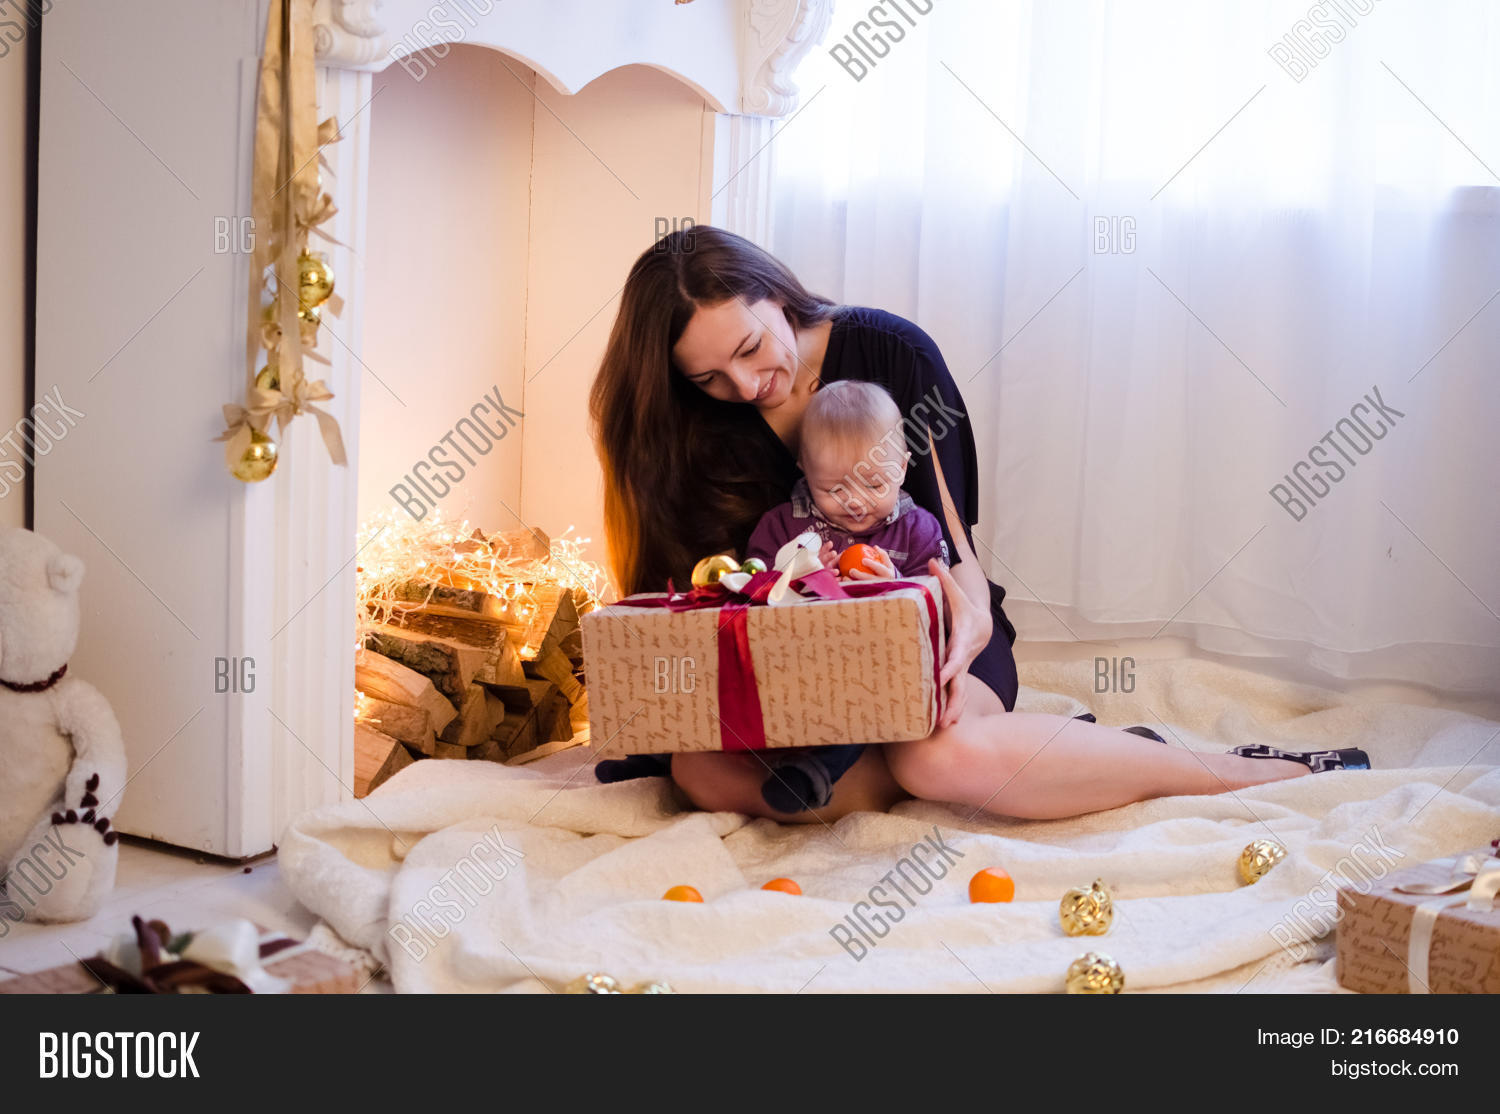 Mother Little Cute Image & Photo (Free Trial)   Bigstock